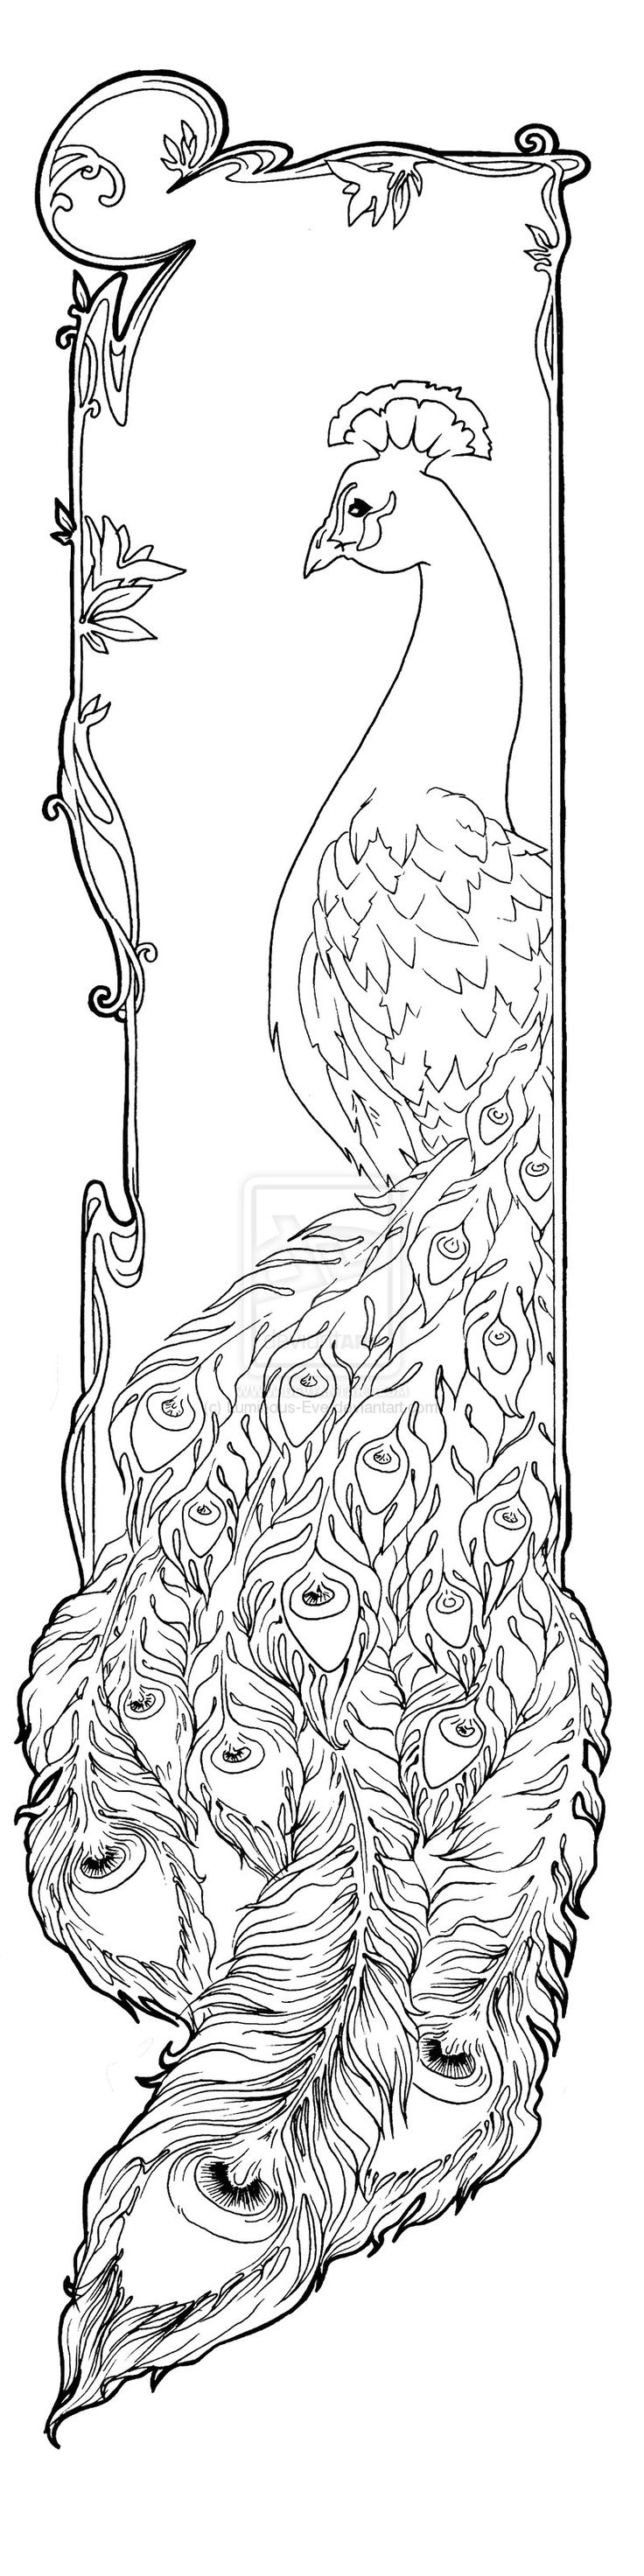 Coloring sheet great wall of china - Nouveau Peacock By Luminous Eve On Deviantart